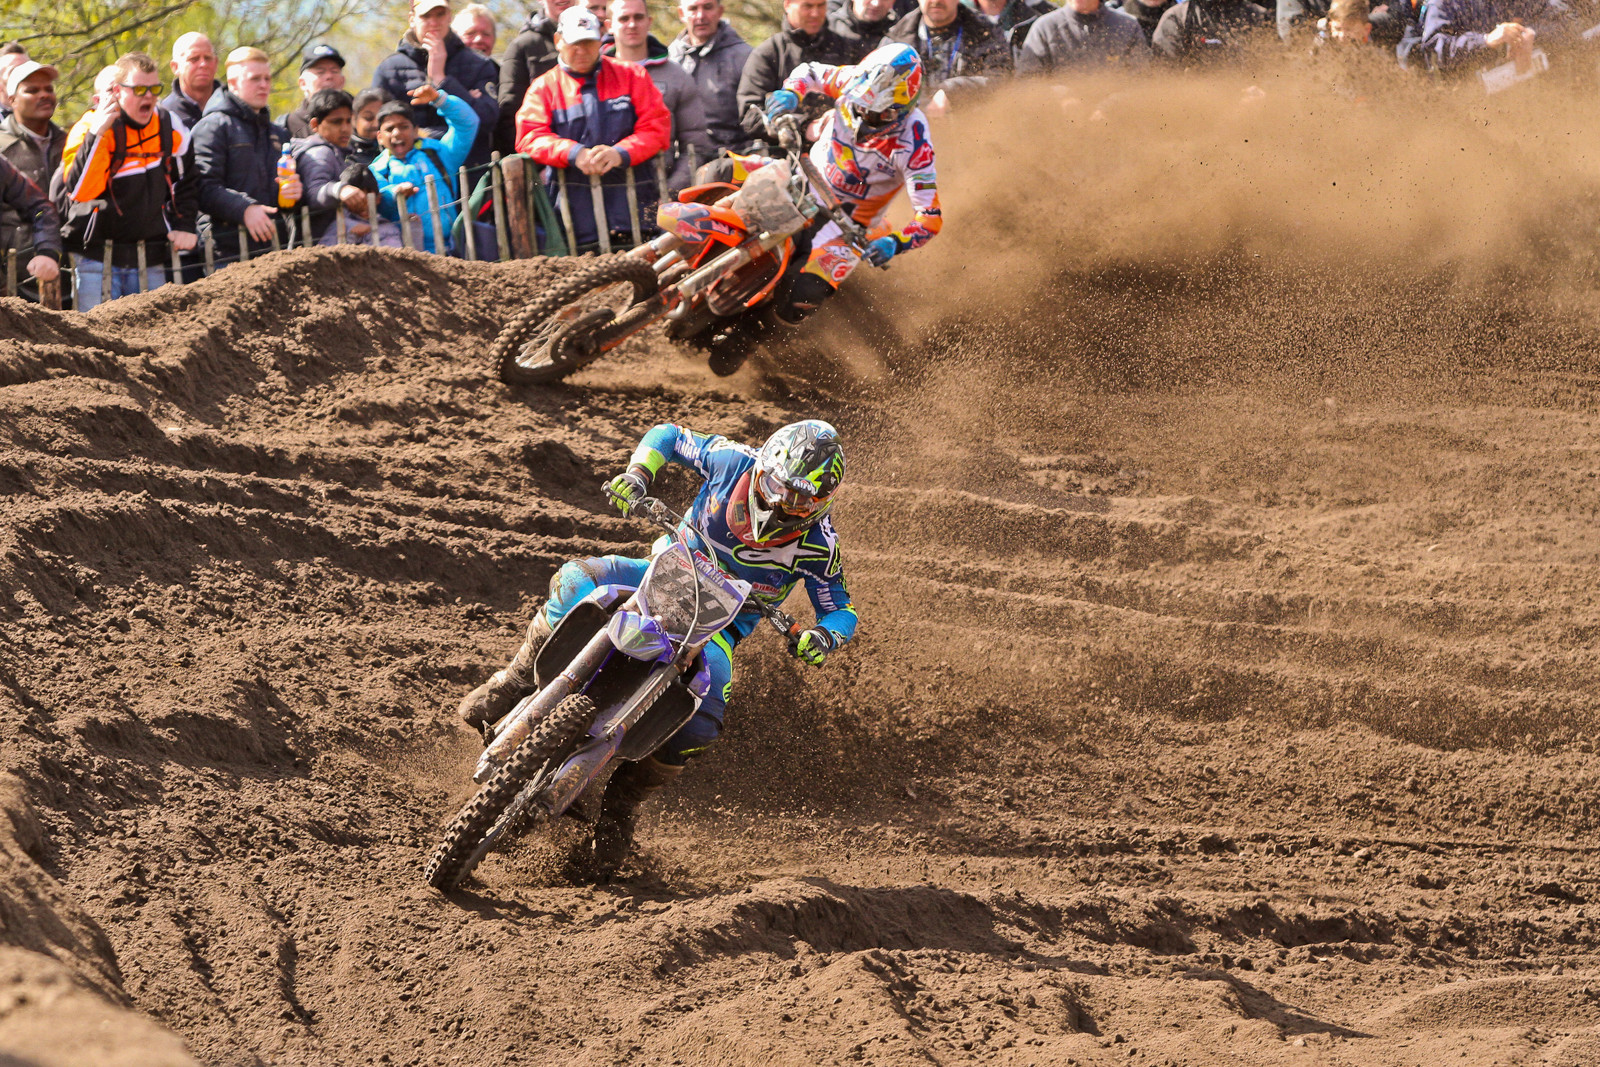 Jeremy van Horebeek / Jeffrey Herlings - Photo Blast: 2017 MXGP of Valkenswaard - Motocross Pictures - Vital MX